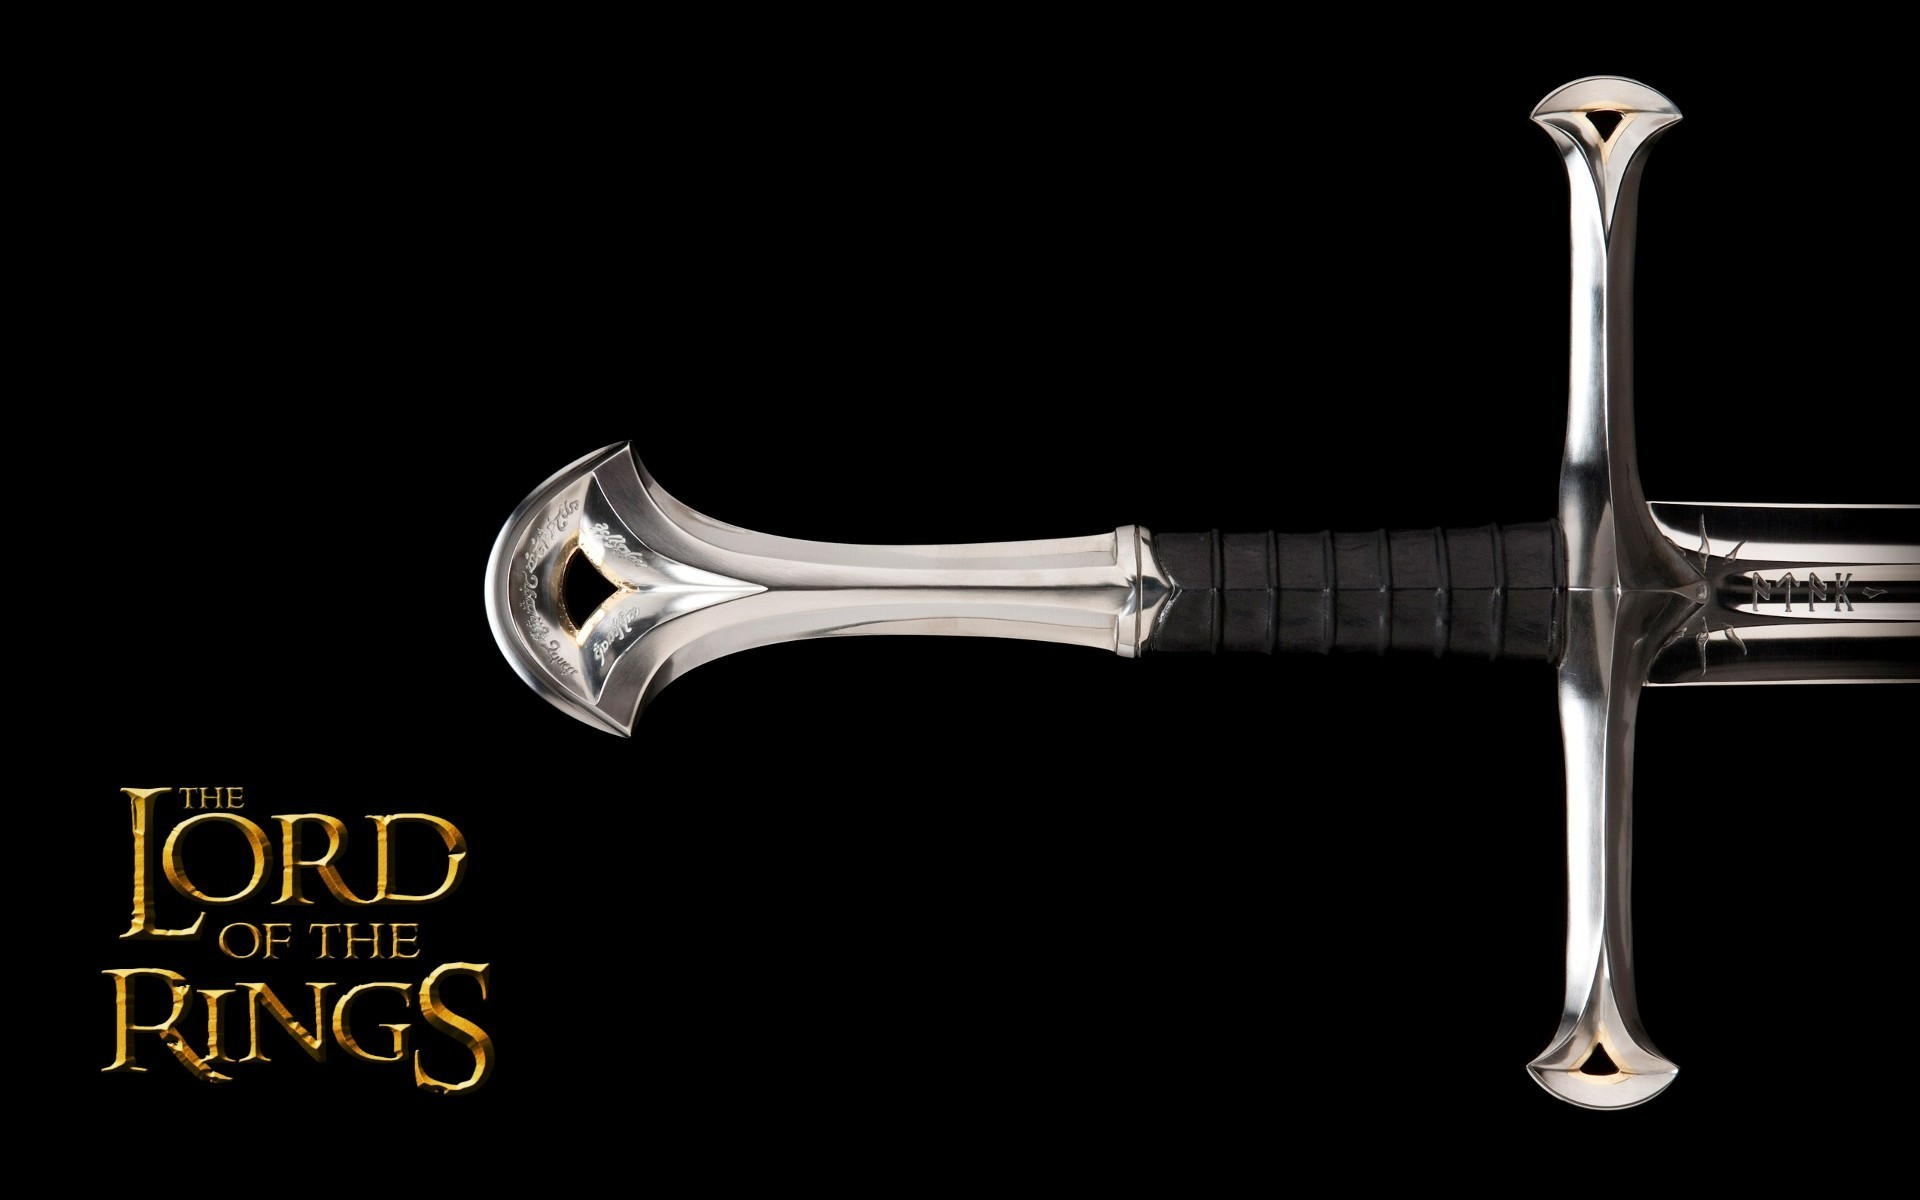 Res: 1920x1200, The Lord Of The Rings Widescreen Wallpaper